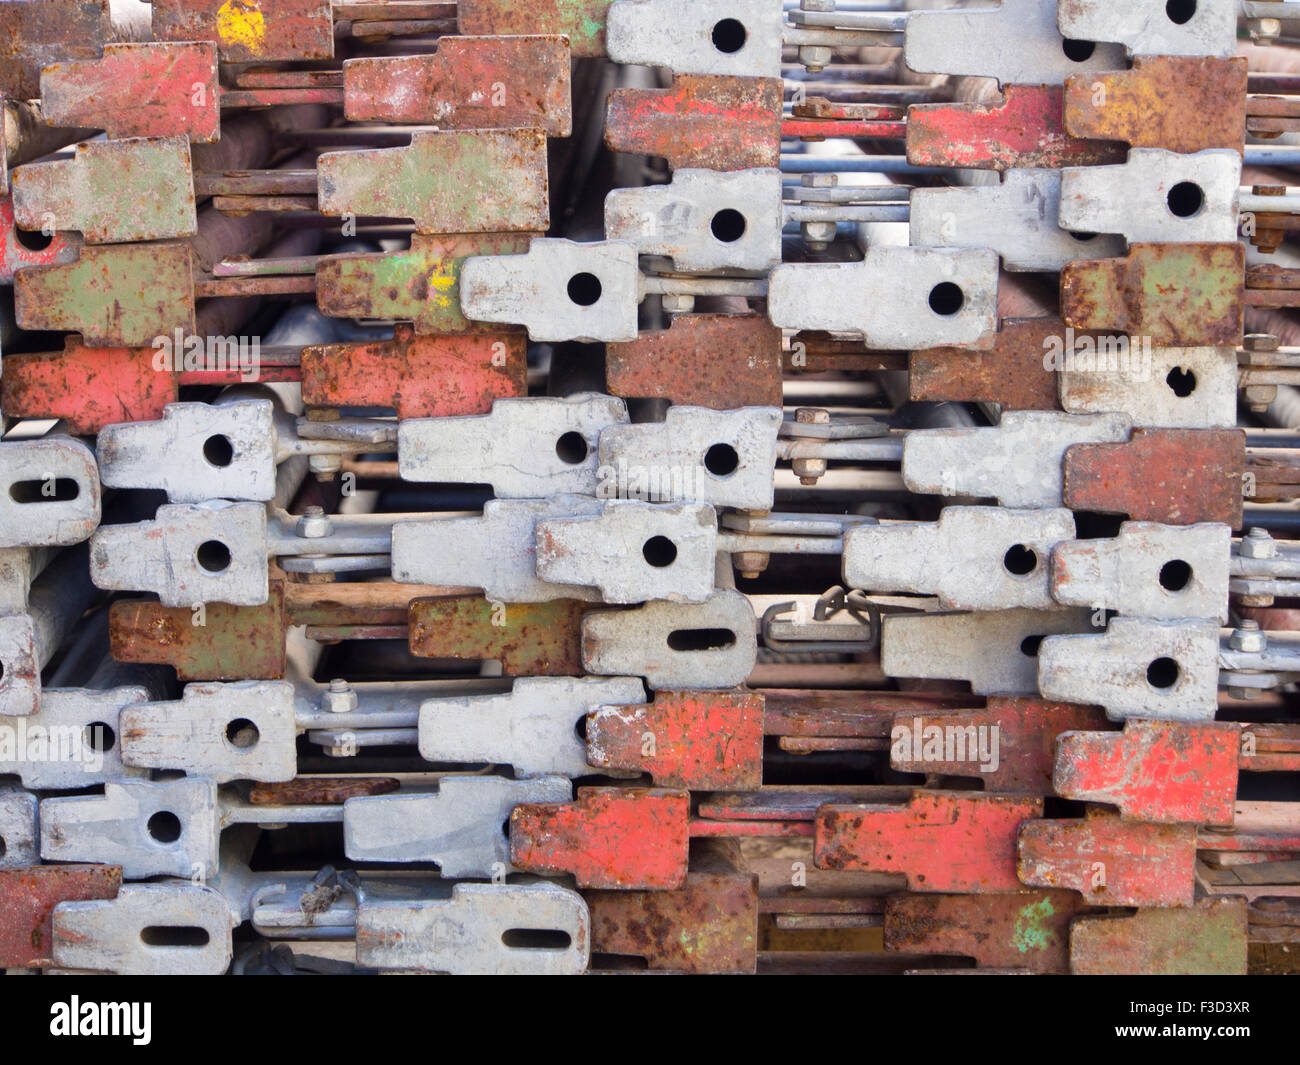 close up of ends of steel scaffolding stacked makes an interesting and irregular pattern - Stock Image